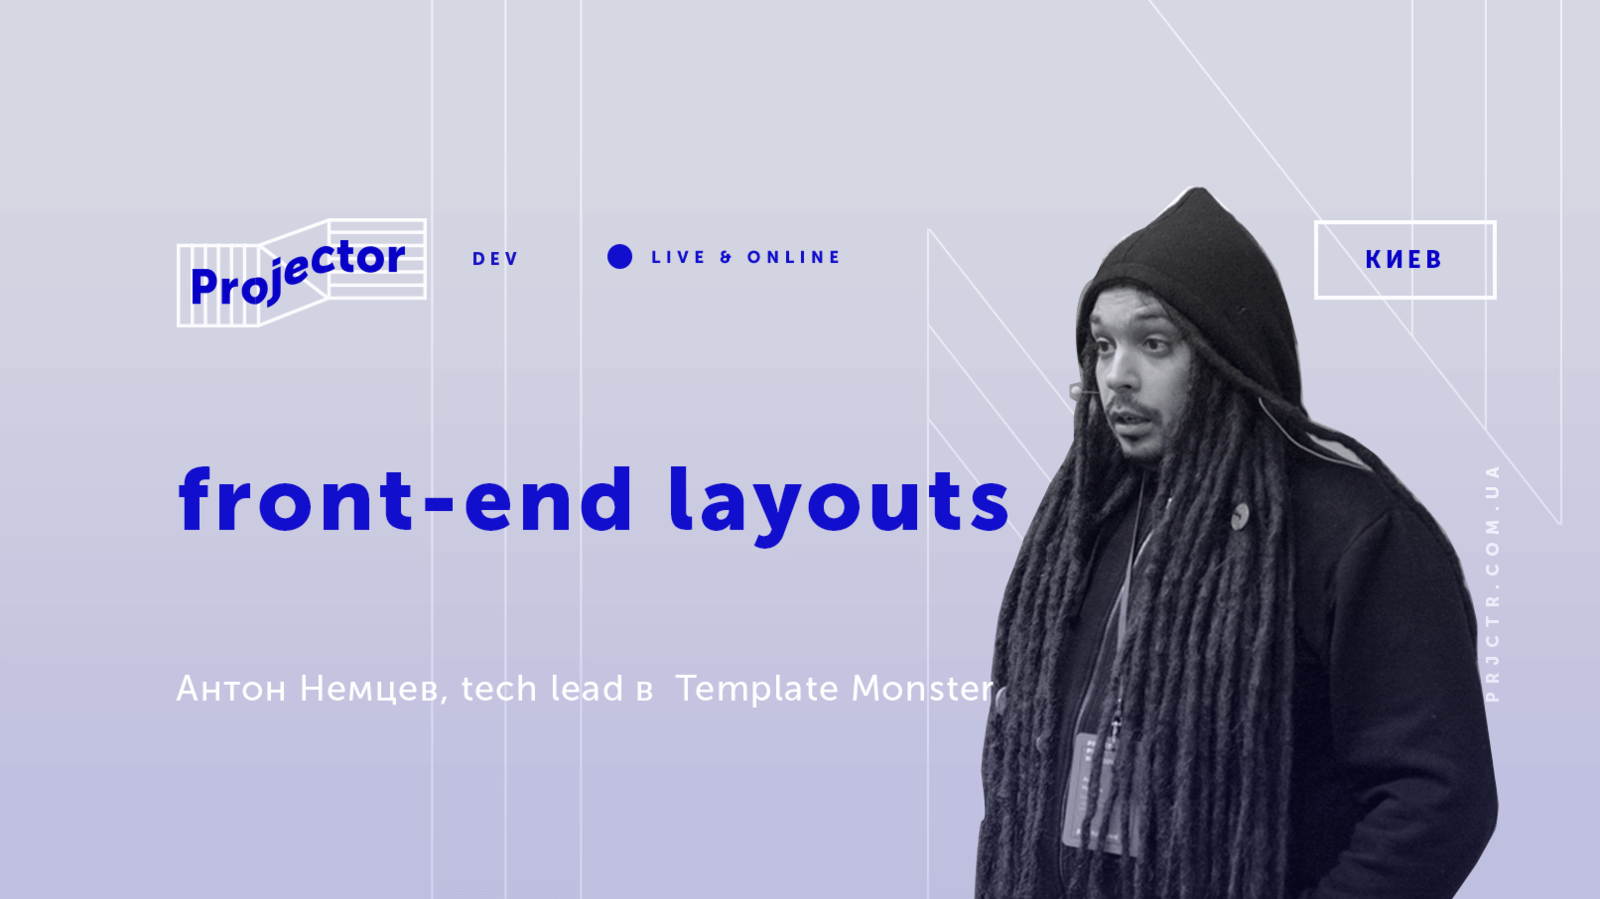 Front-end layouts